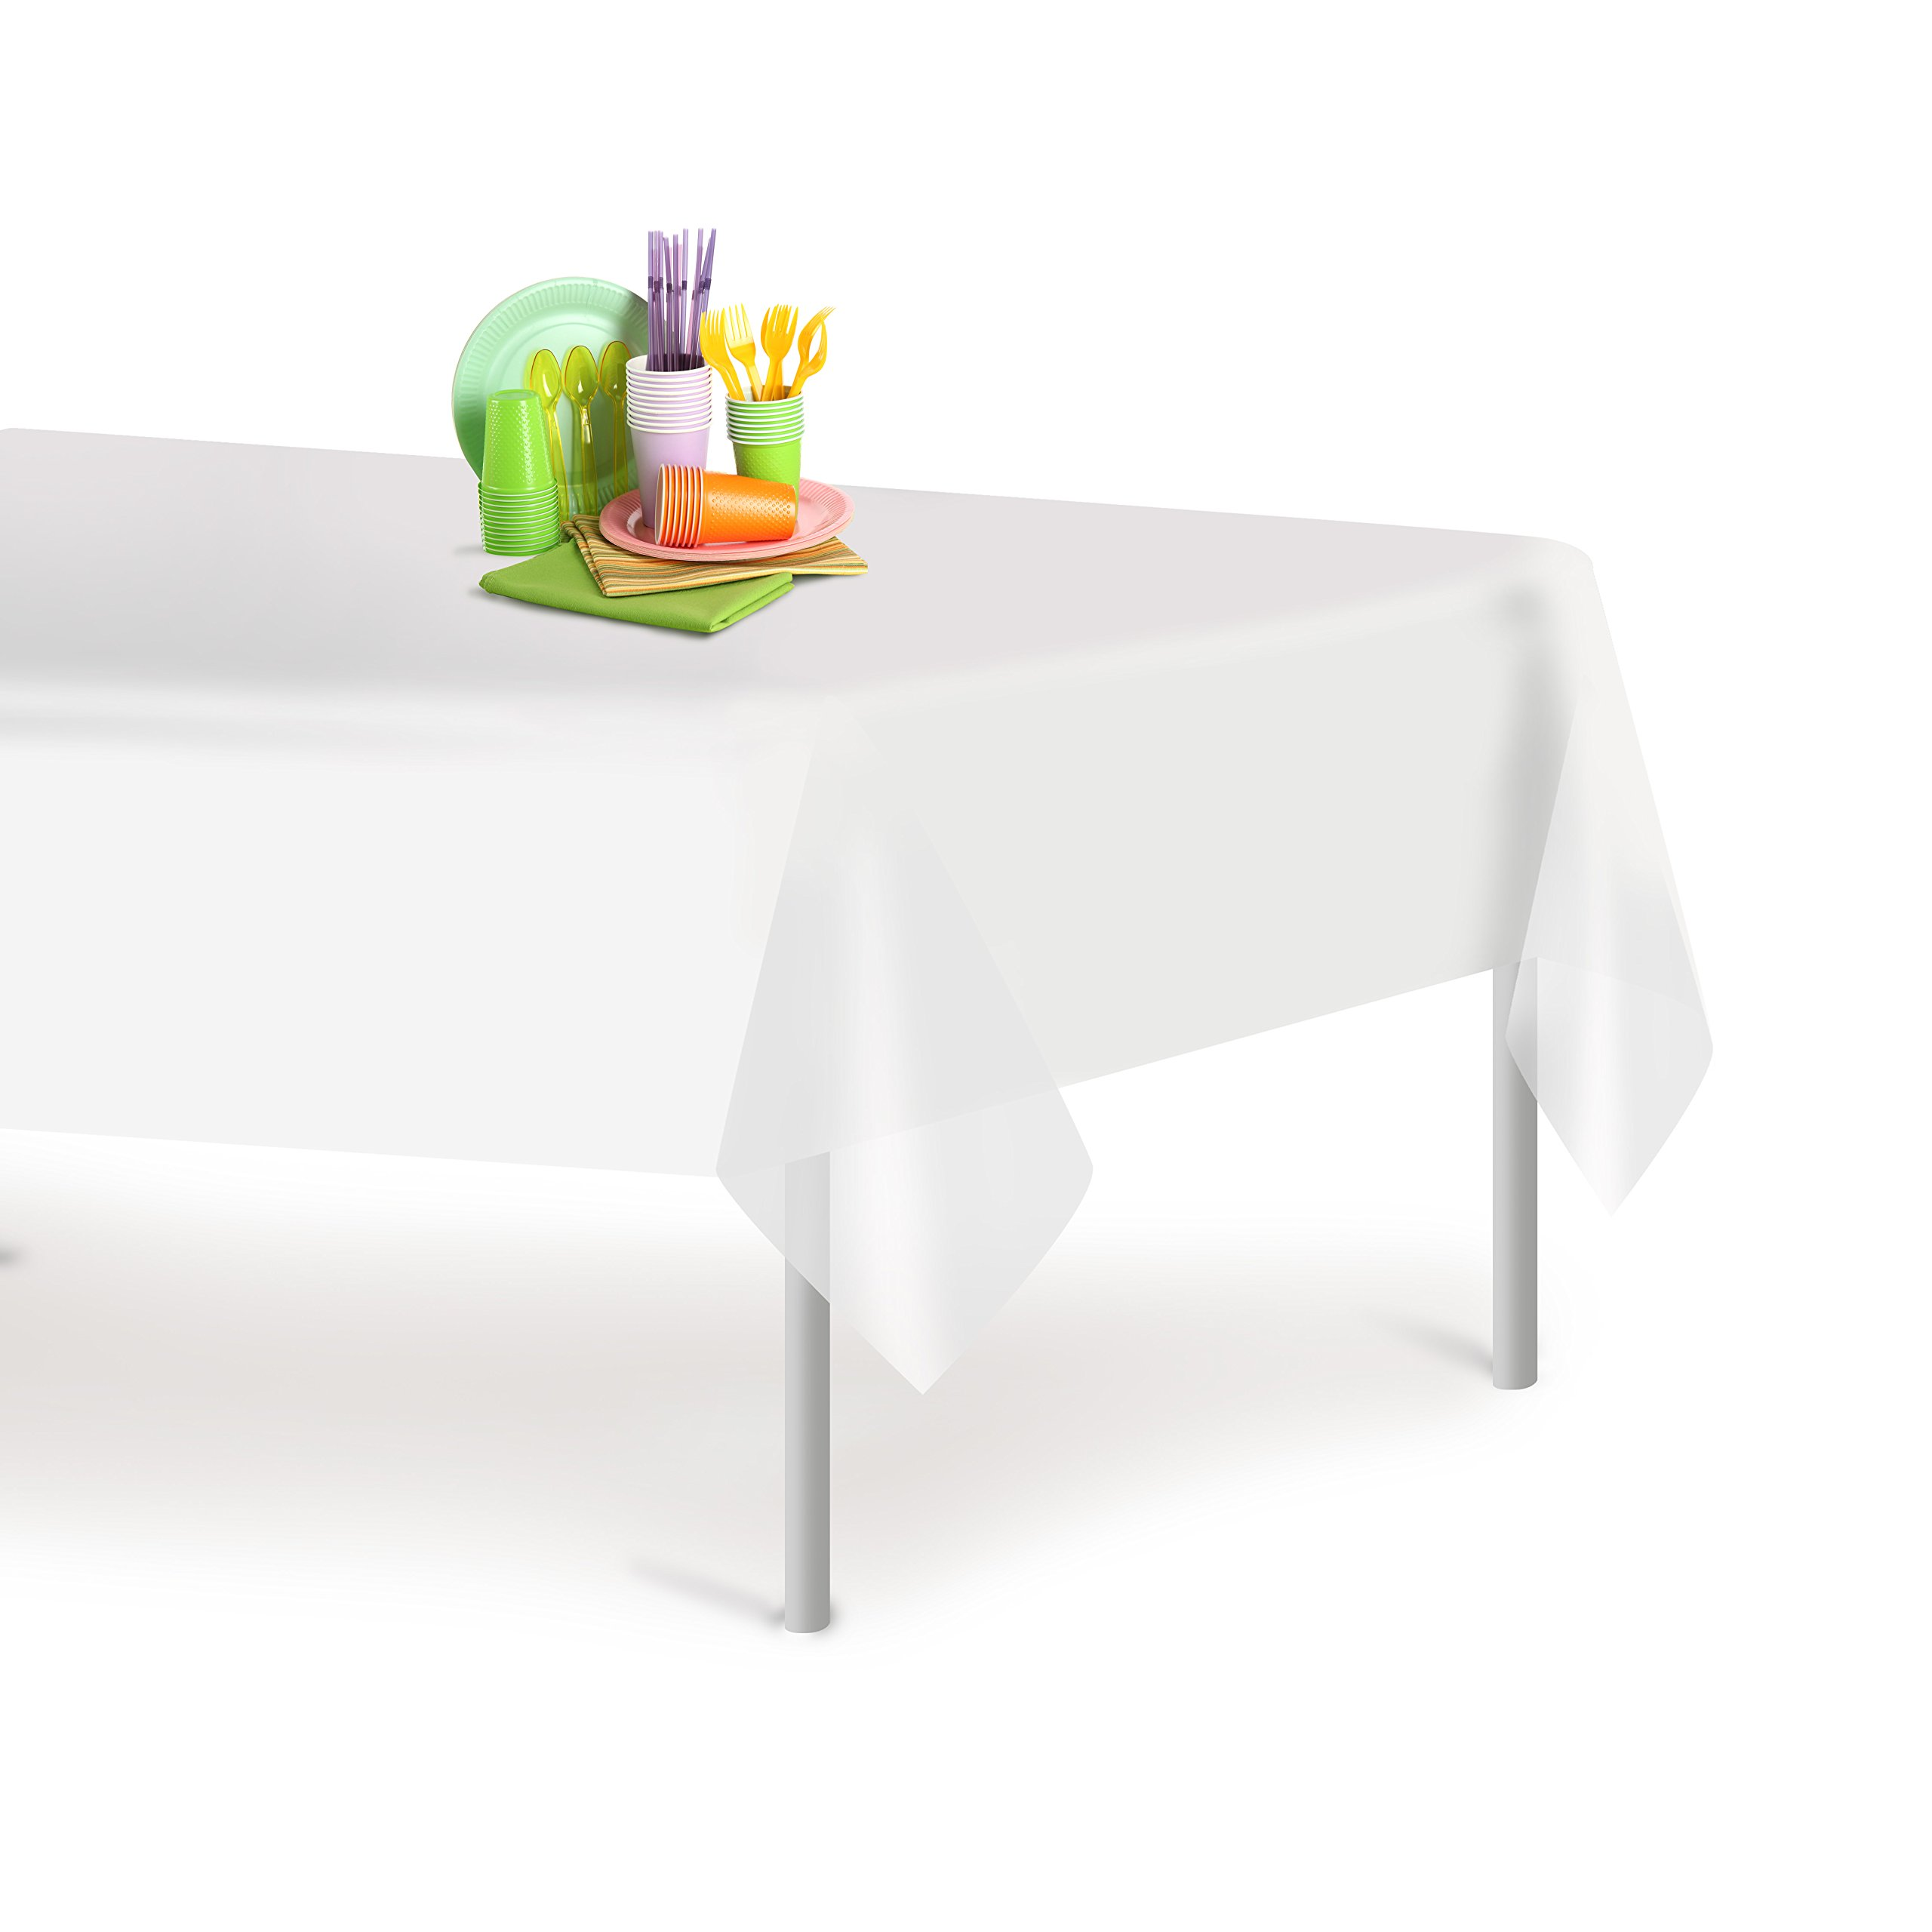 White 12 Pack Premium Disposable Plastic Tablecloth 54 Inch. x 108 Inch. Rectangle Table Cover By Dluxware